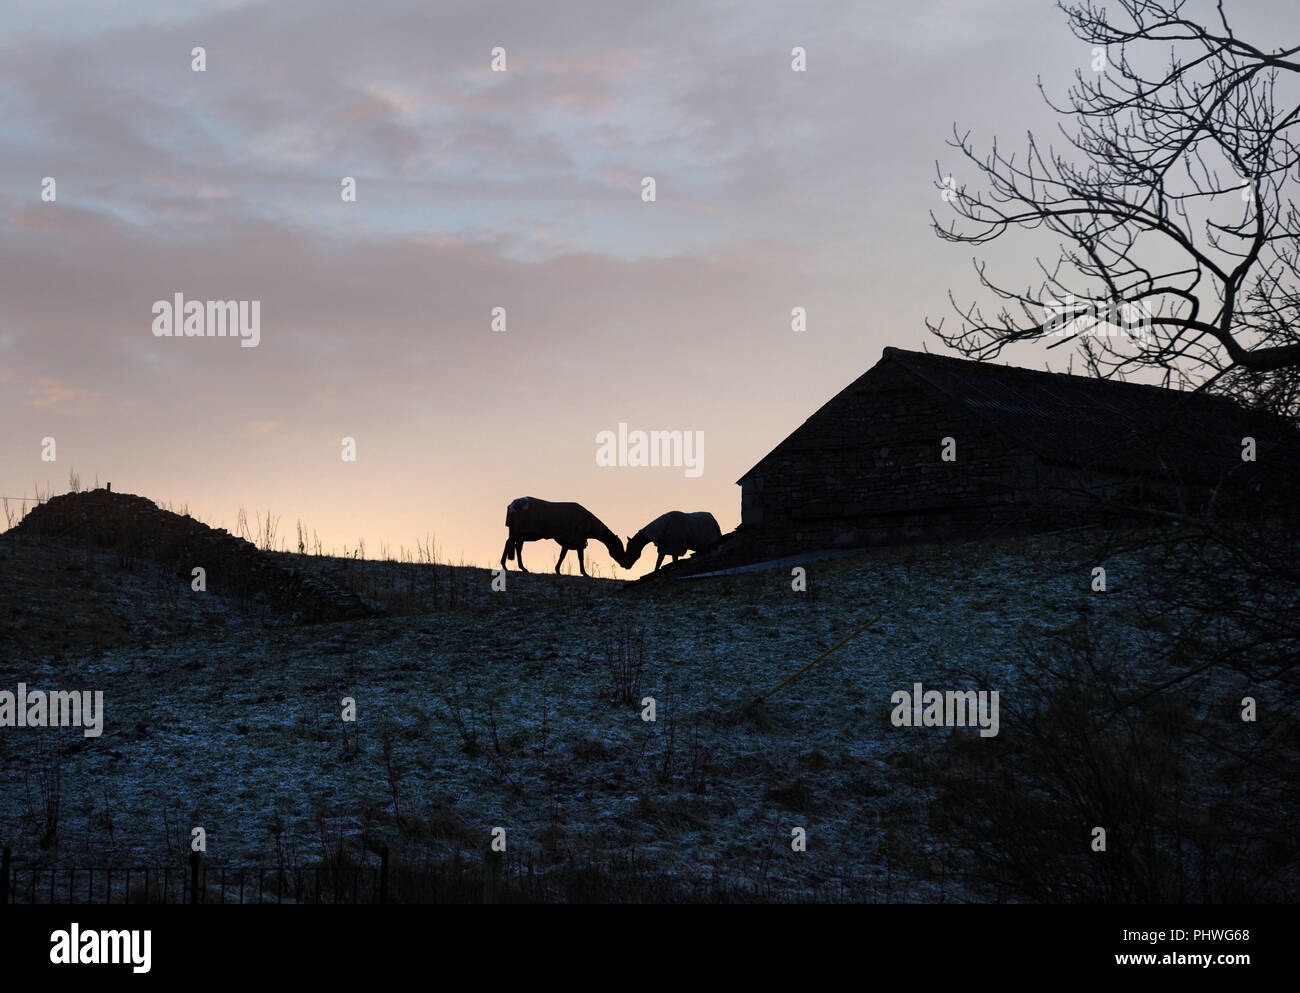 Two horses kiss beside a stone barn on a hillside in the Yorkshire Dales. The horses are seen in silhouette at sunset. Winter frost on the ground - Stock Image